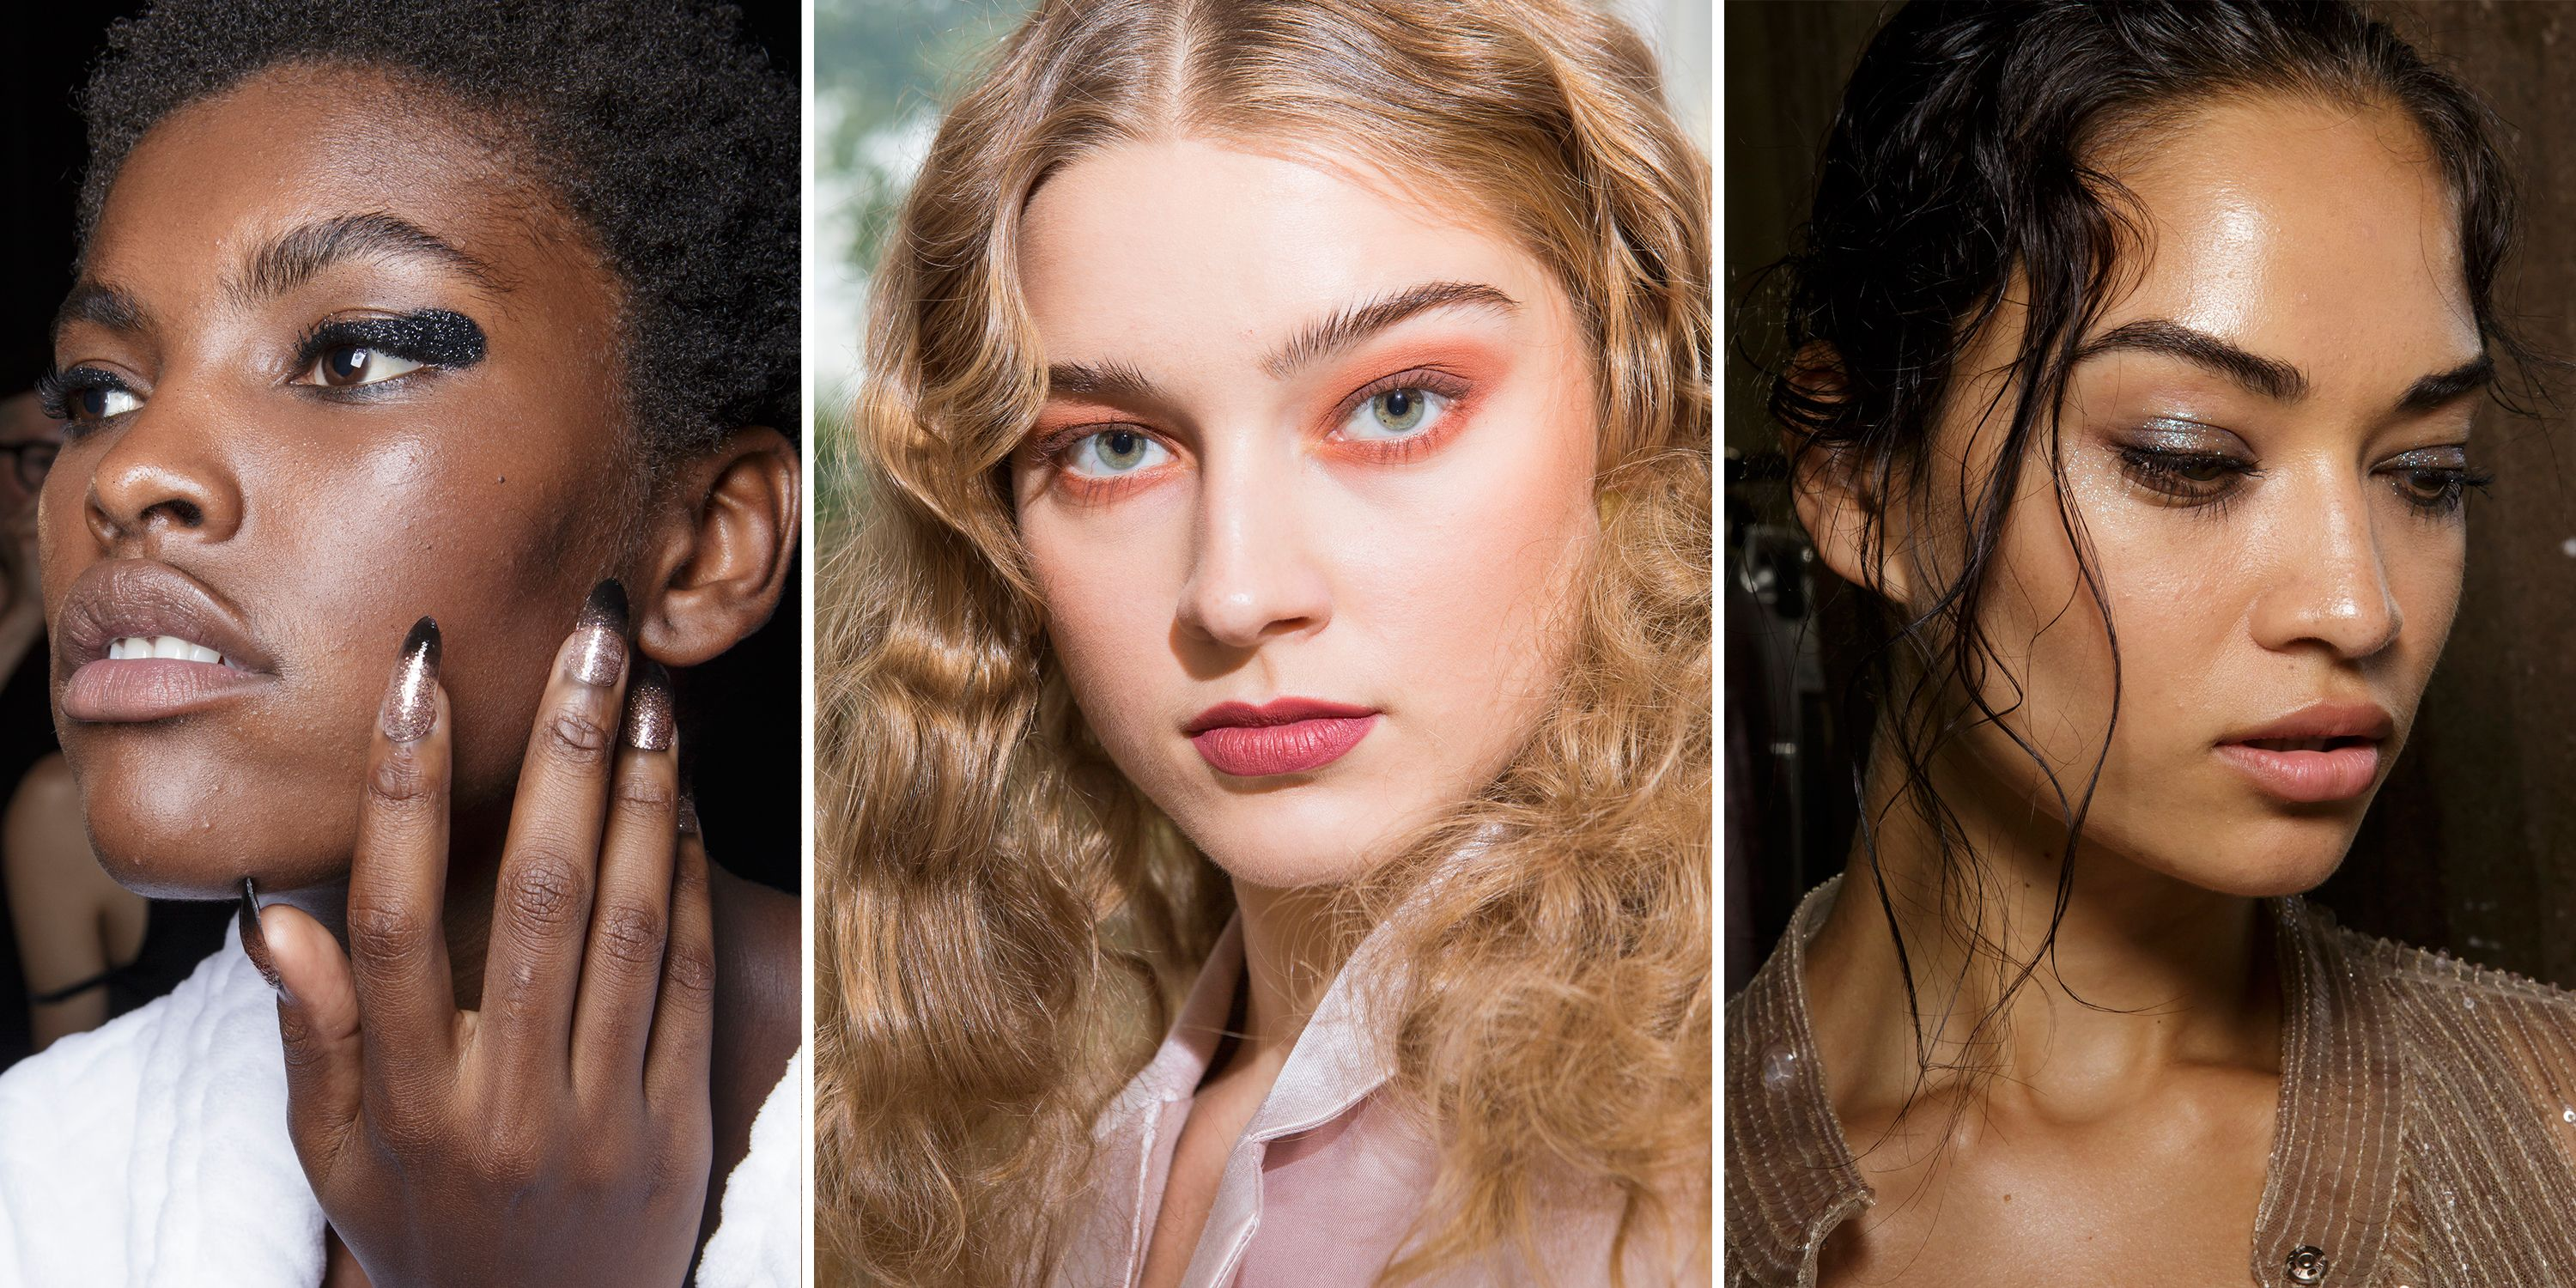 5 Beauty Trends for 2015 You'll Love To Try